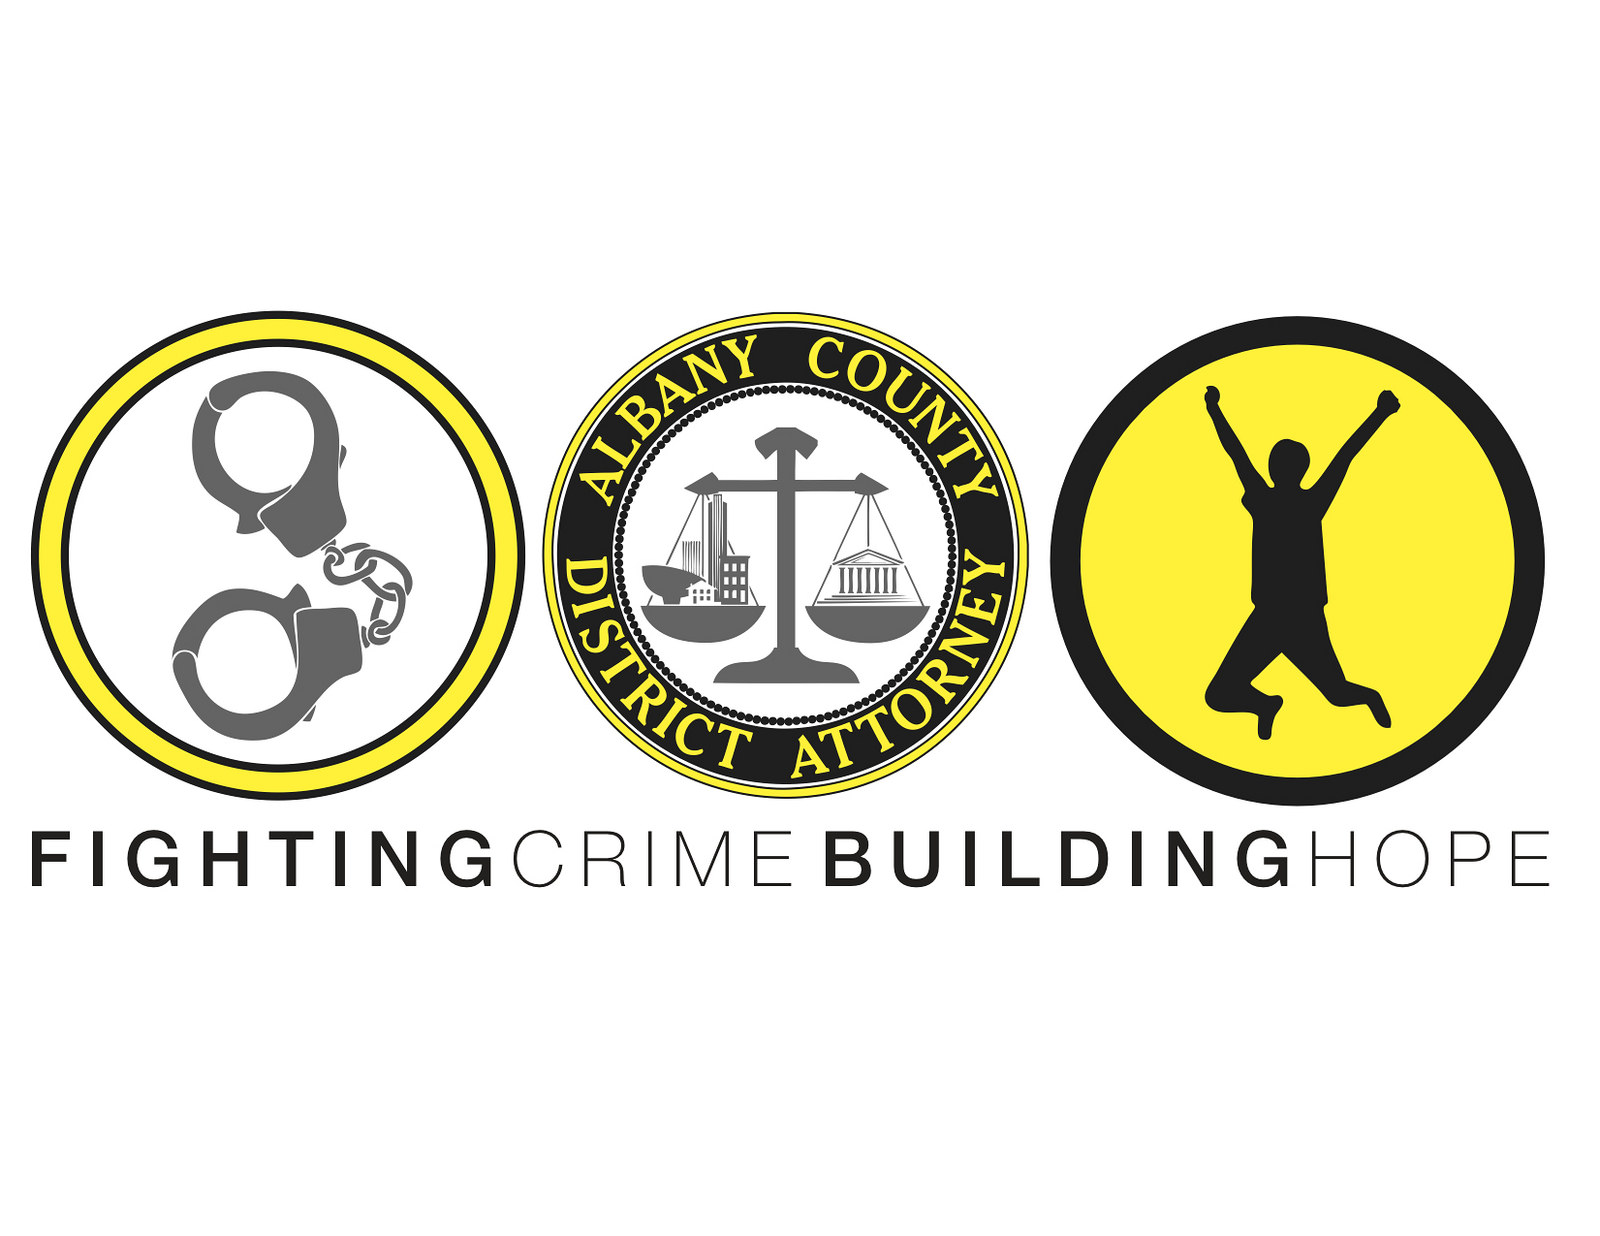 Fighting Crime Building Hope